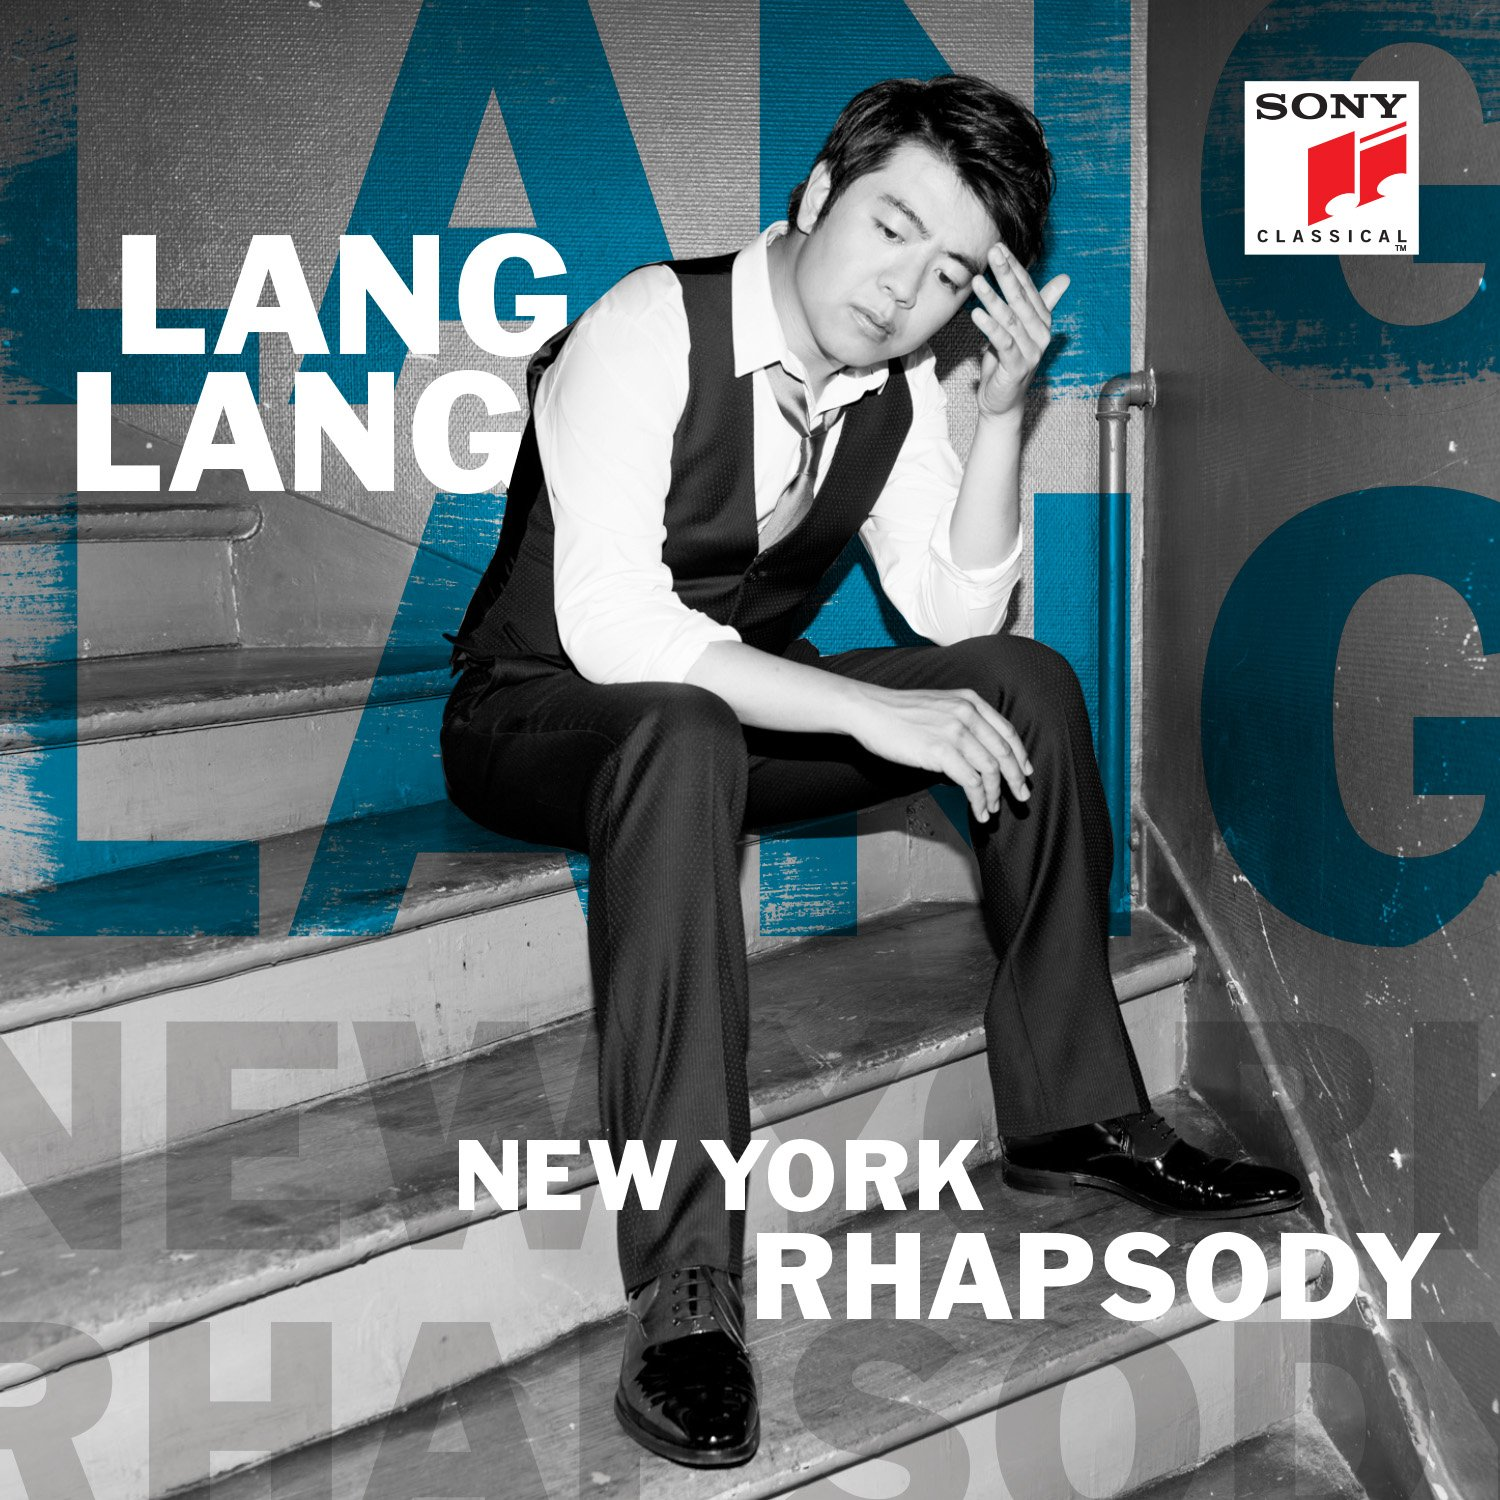 """The magic of New York City Inspires Lang Lang on New Album """"New York Rhapsody"""" 